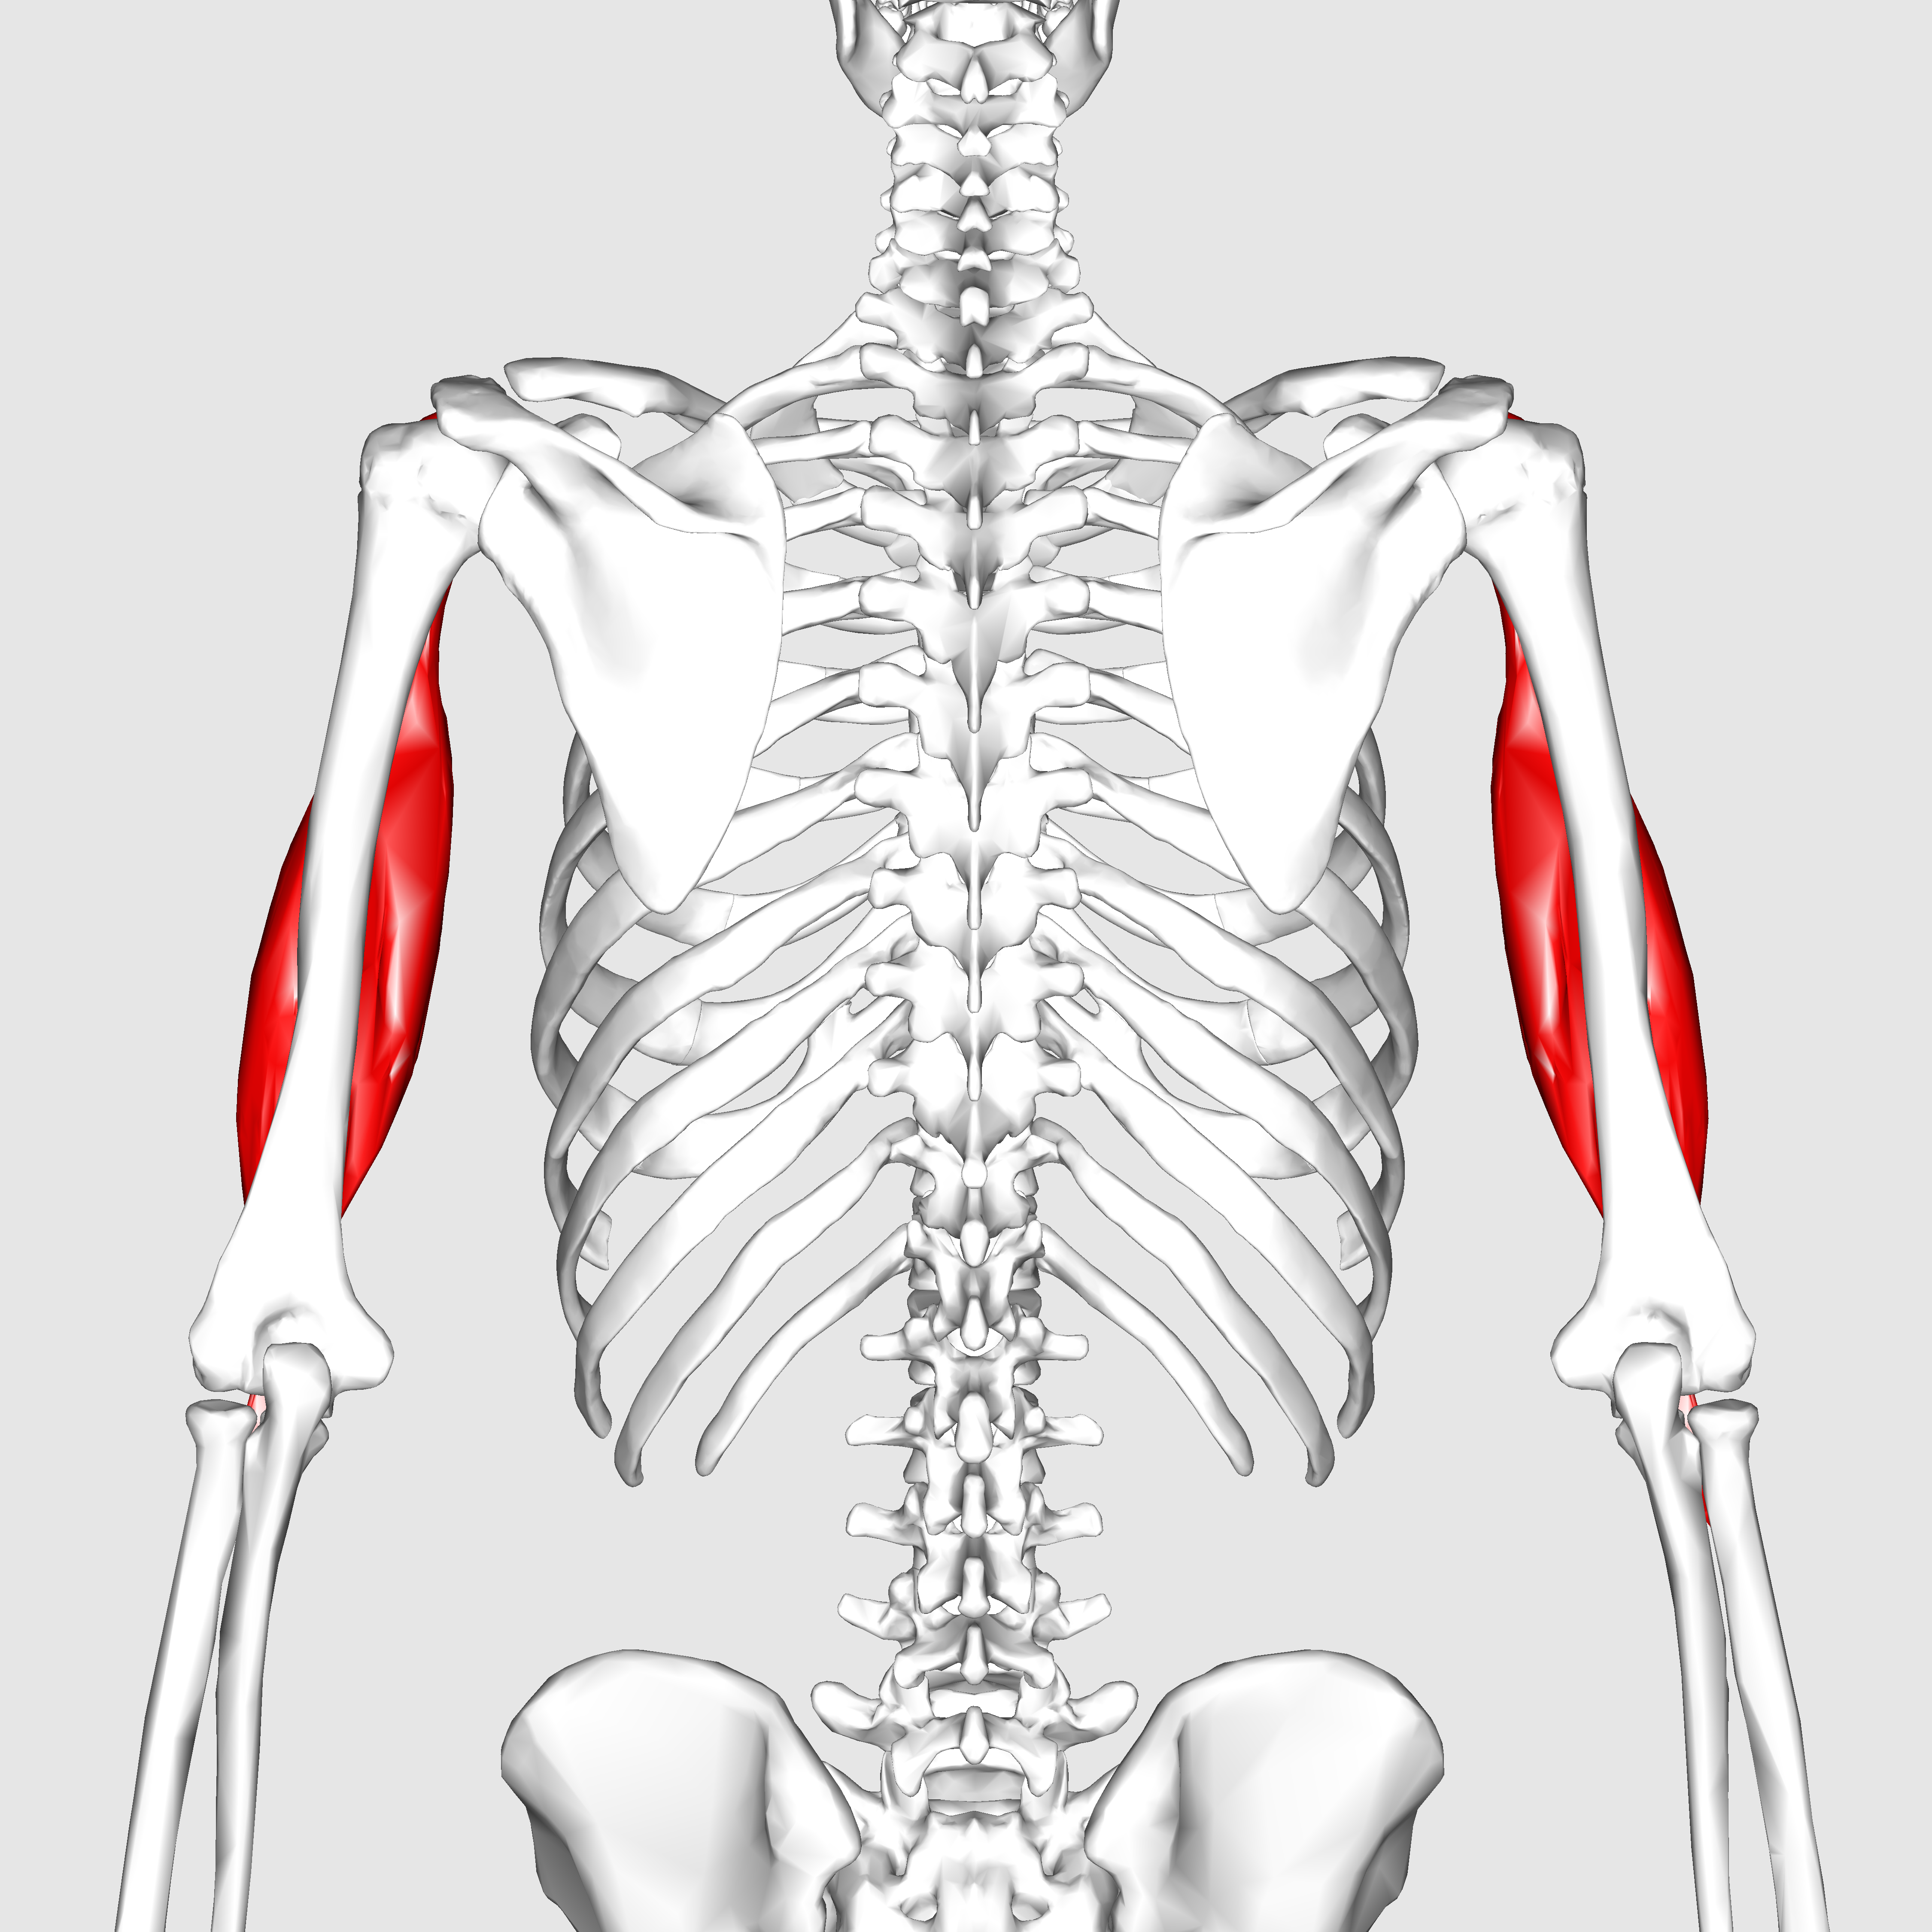 File:Biceps brachii muscle05.png - Wikimedia Commons